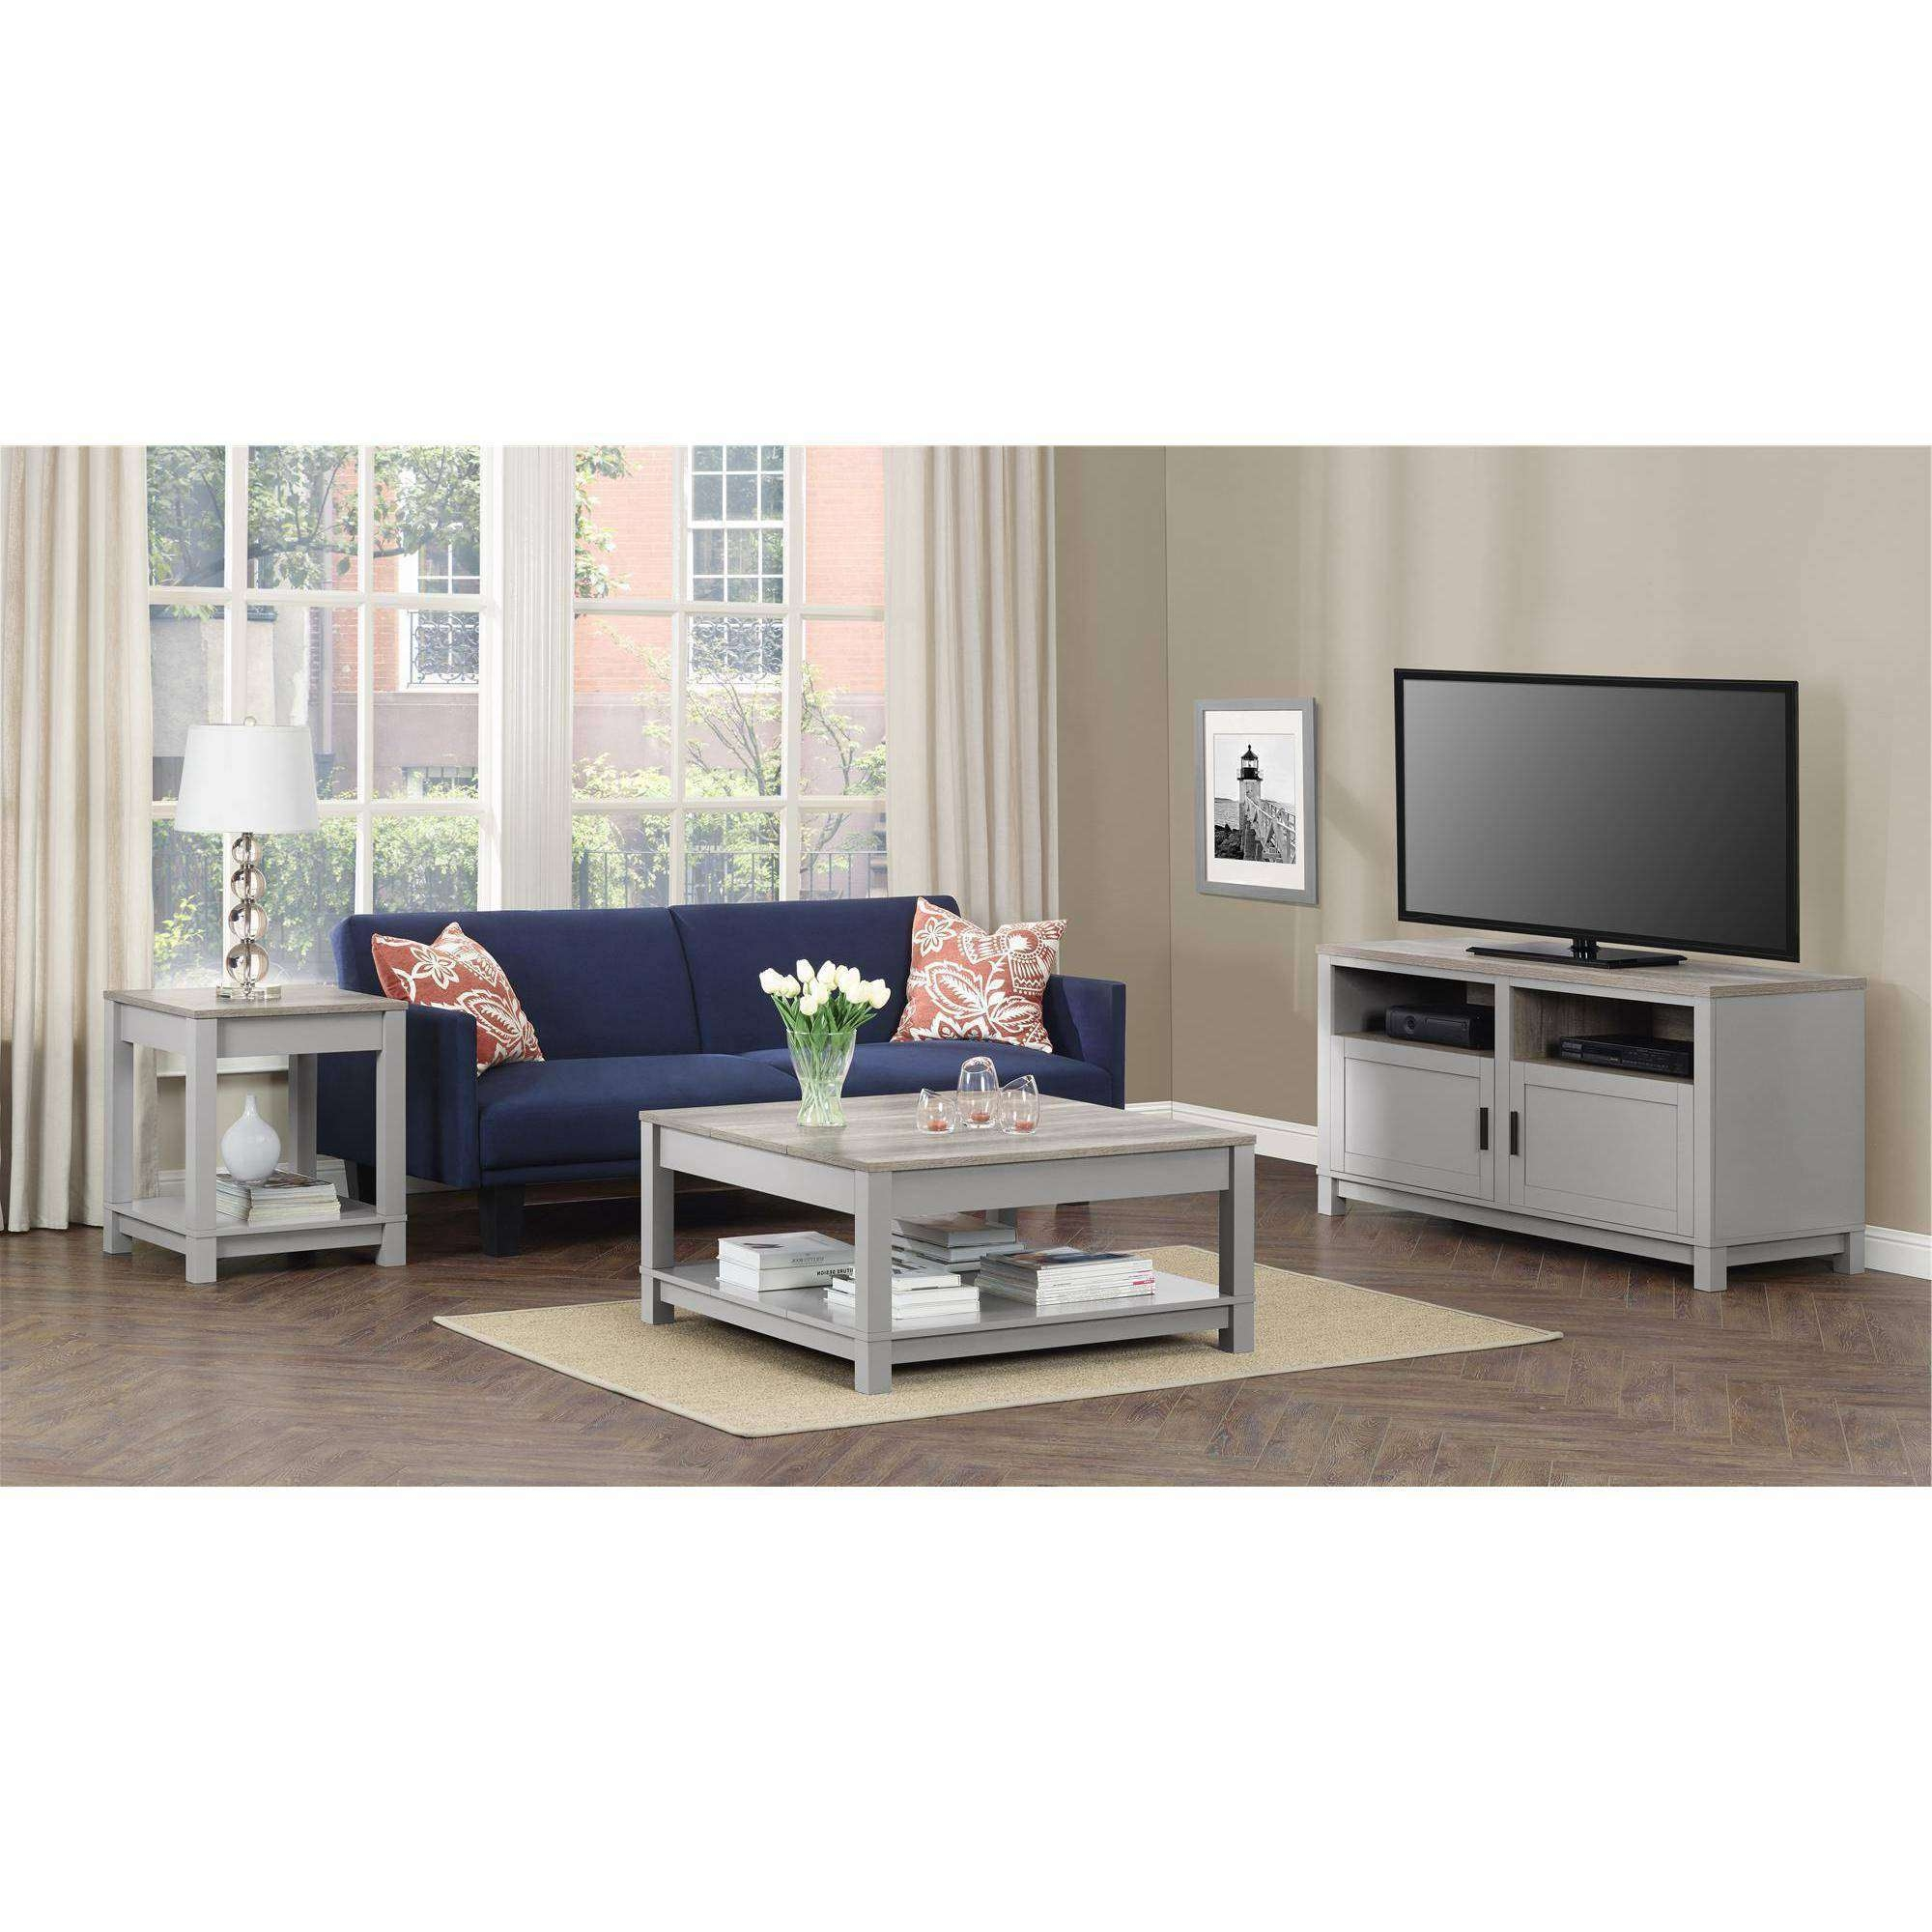 Coffee Tables  Living Room Coffee Table Sets Small Occasional Inside Tv Cabinets And Coffee Table  sc 1 st  Home Interior \u0026 Exterior Design Ideas & Best 20+ of Tv Cabinets And Coffee Table Sets